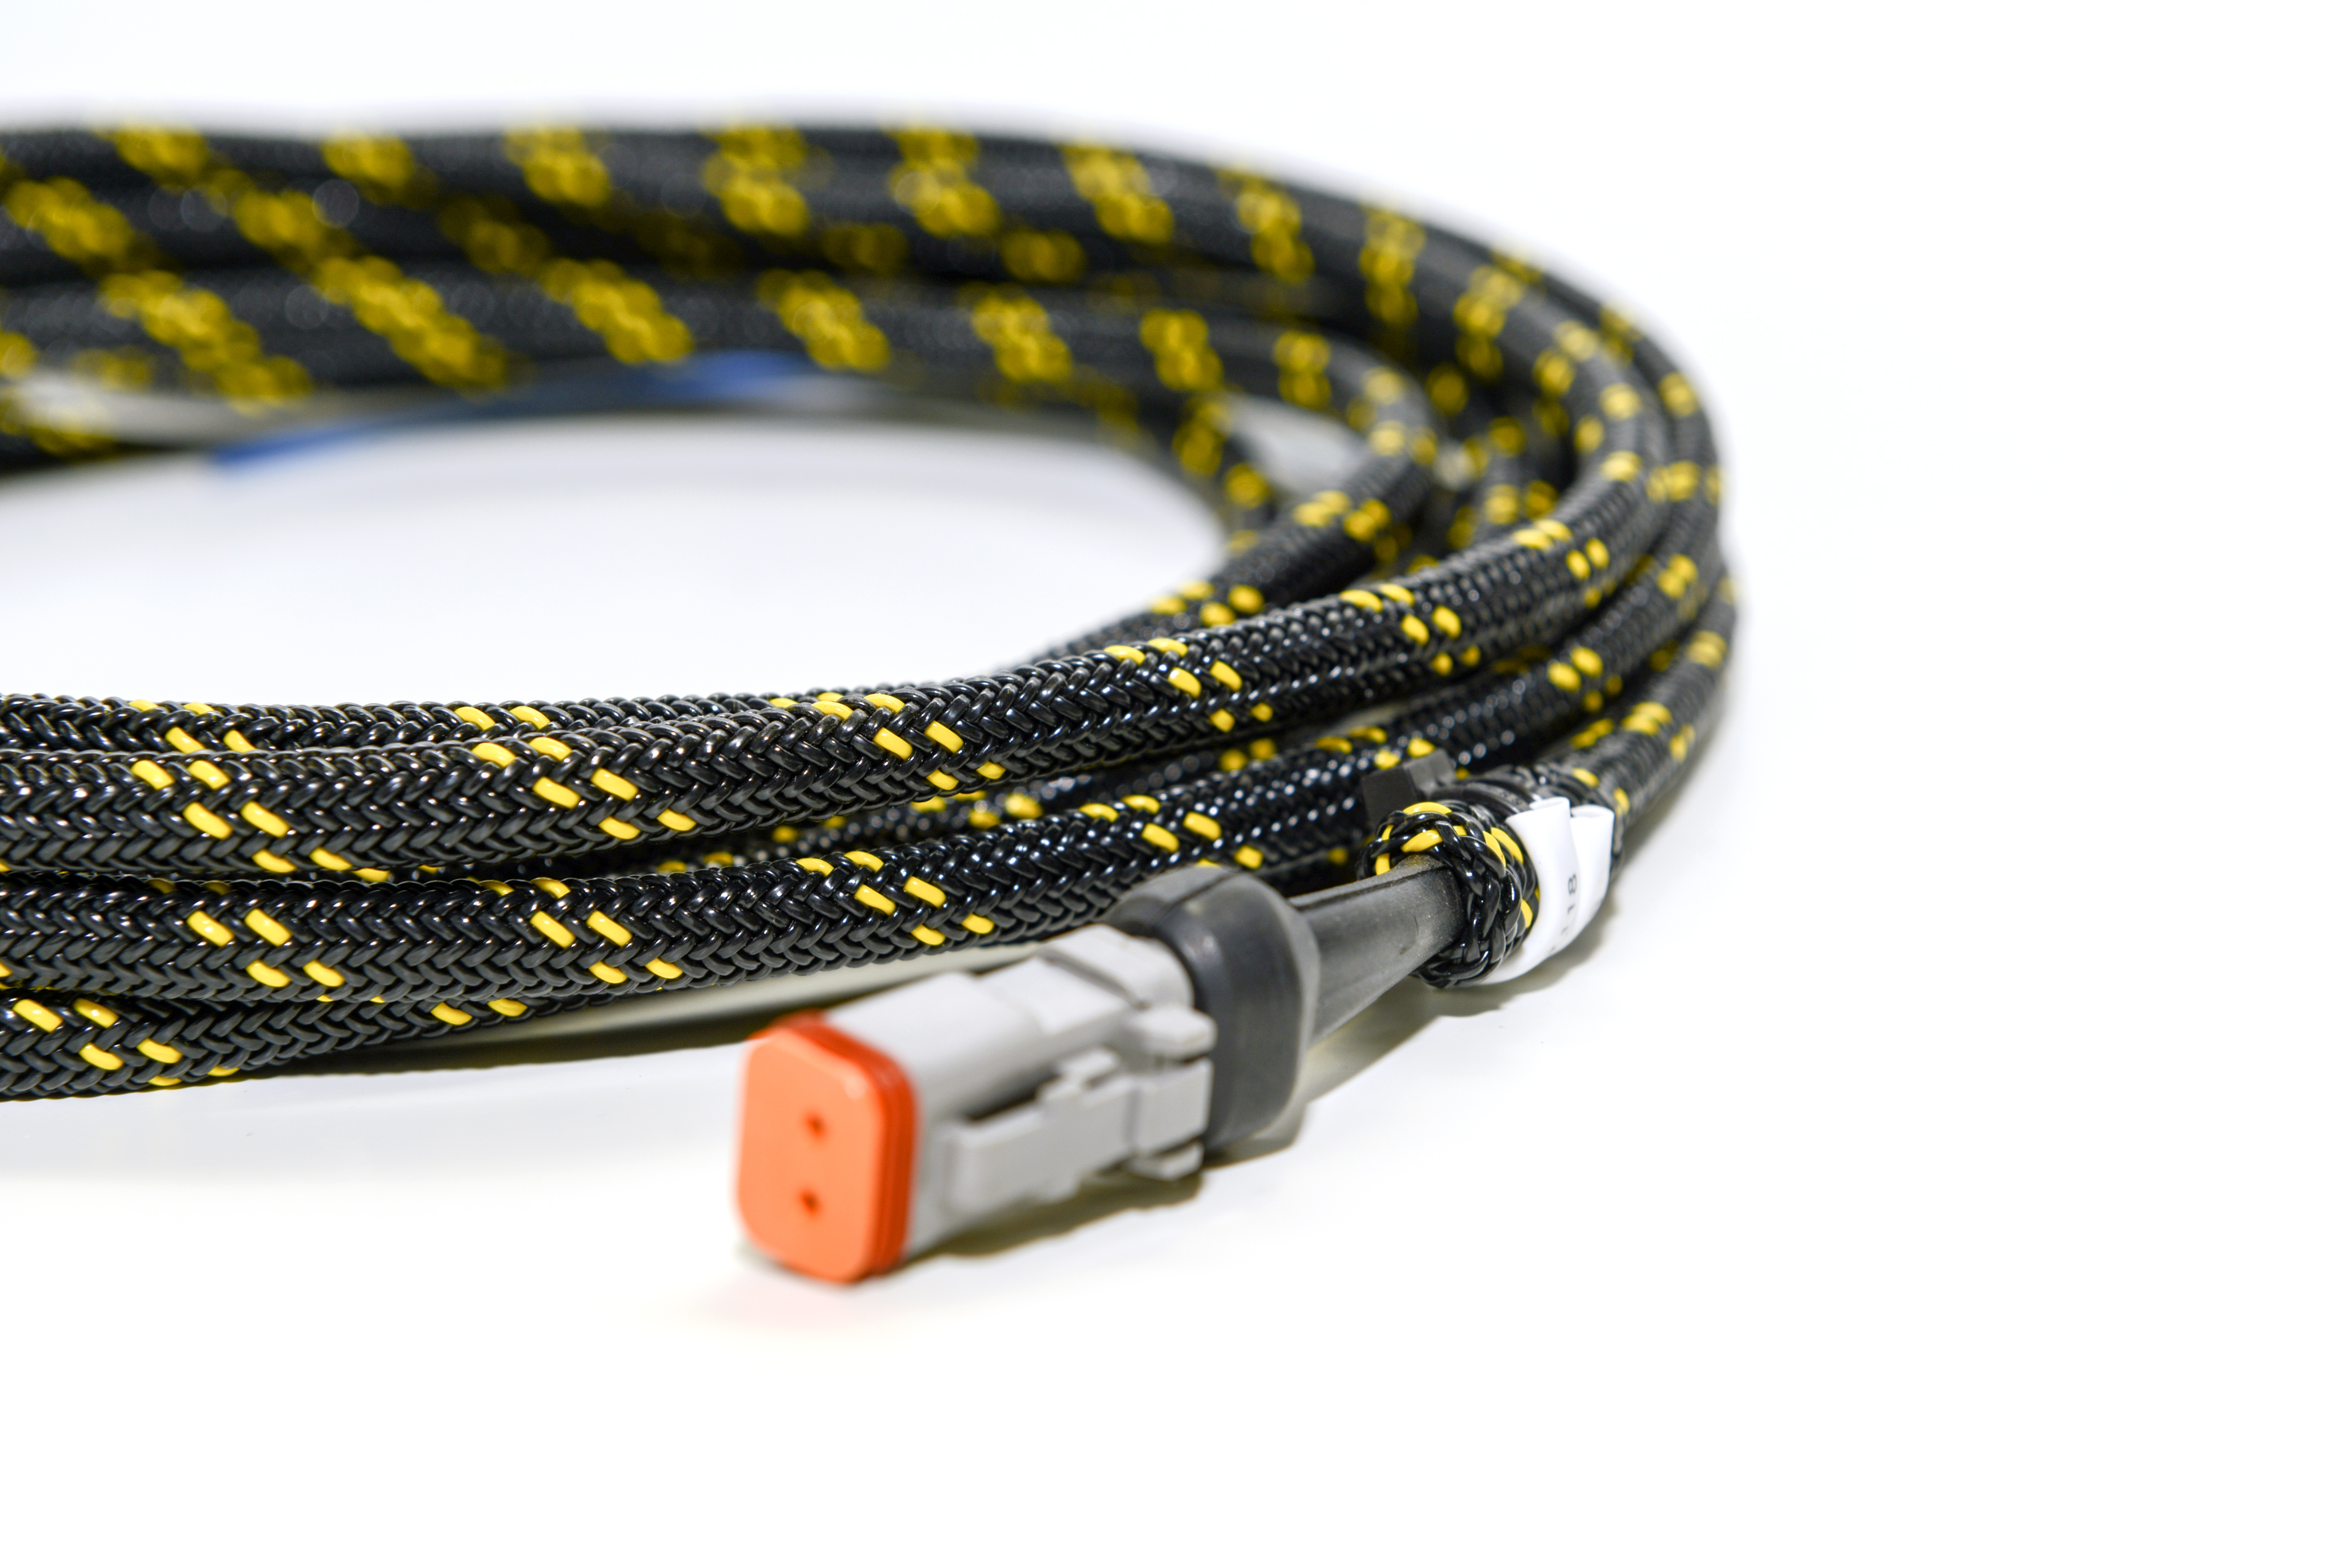 we design and manufacture automotive braided wiring harnesses that  withstand high temperatures and offer better protection and durability than  standard